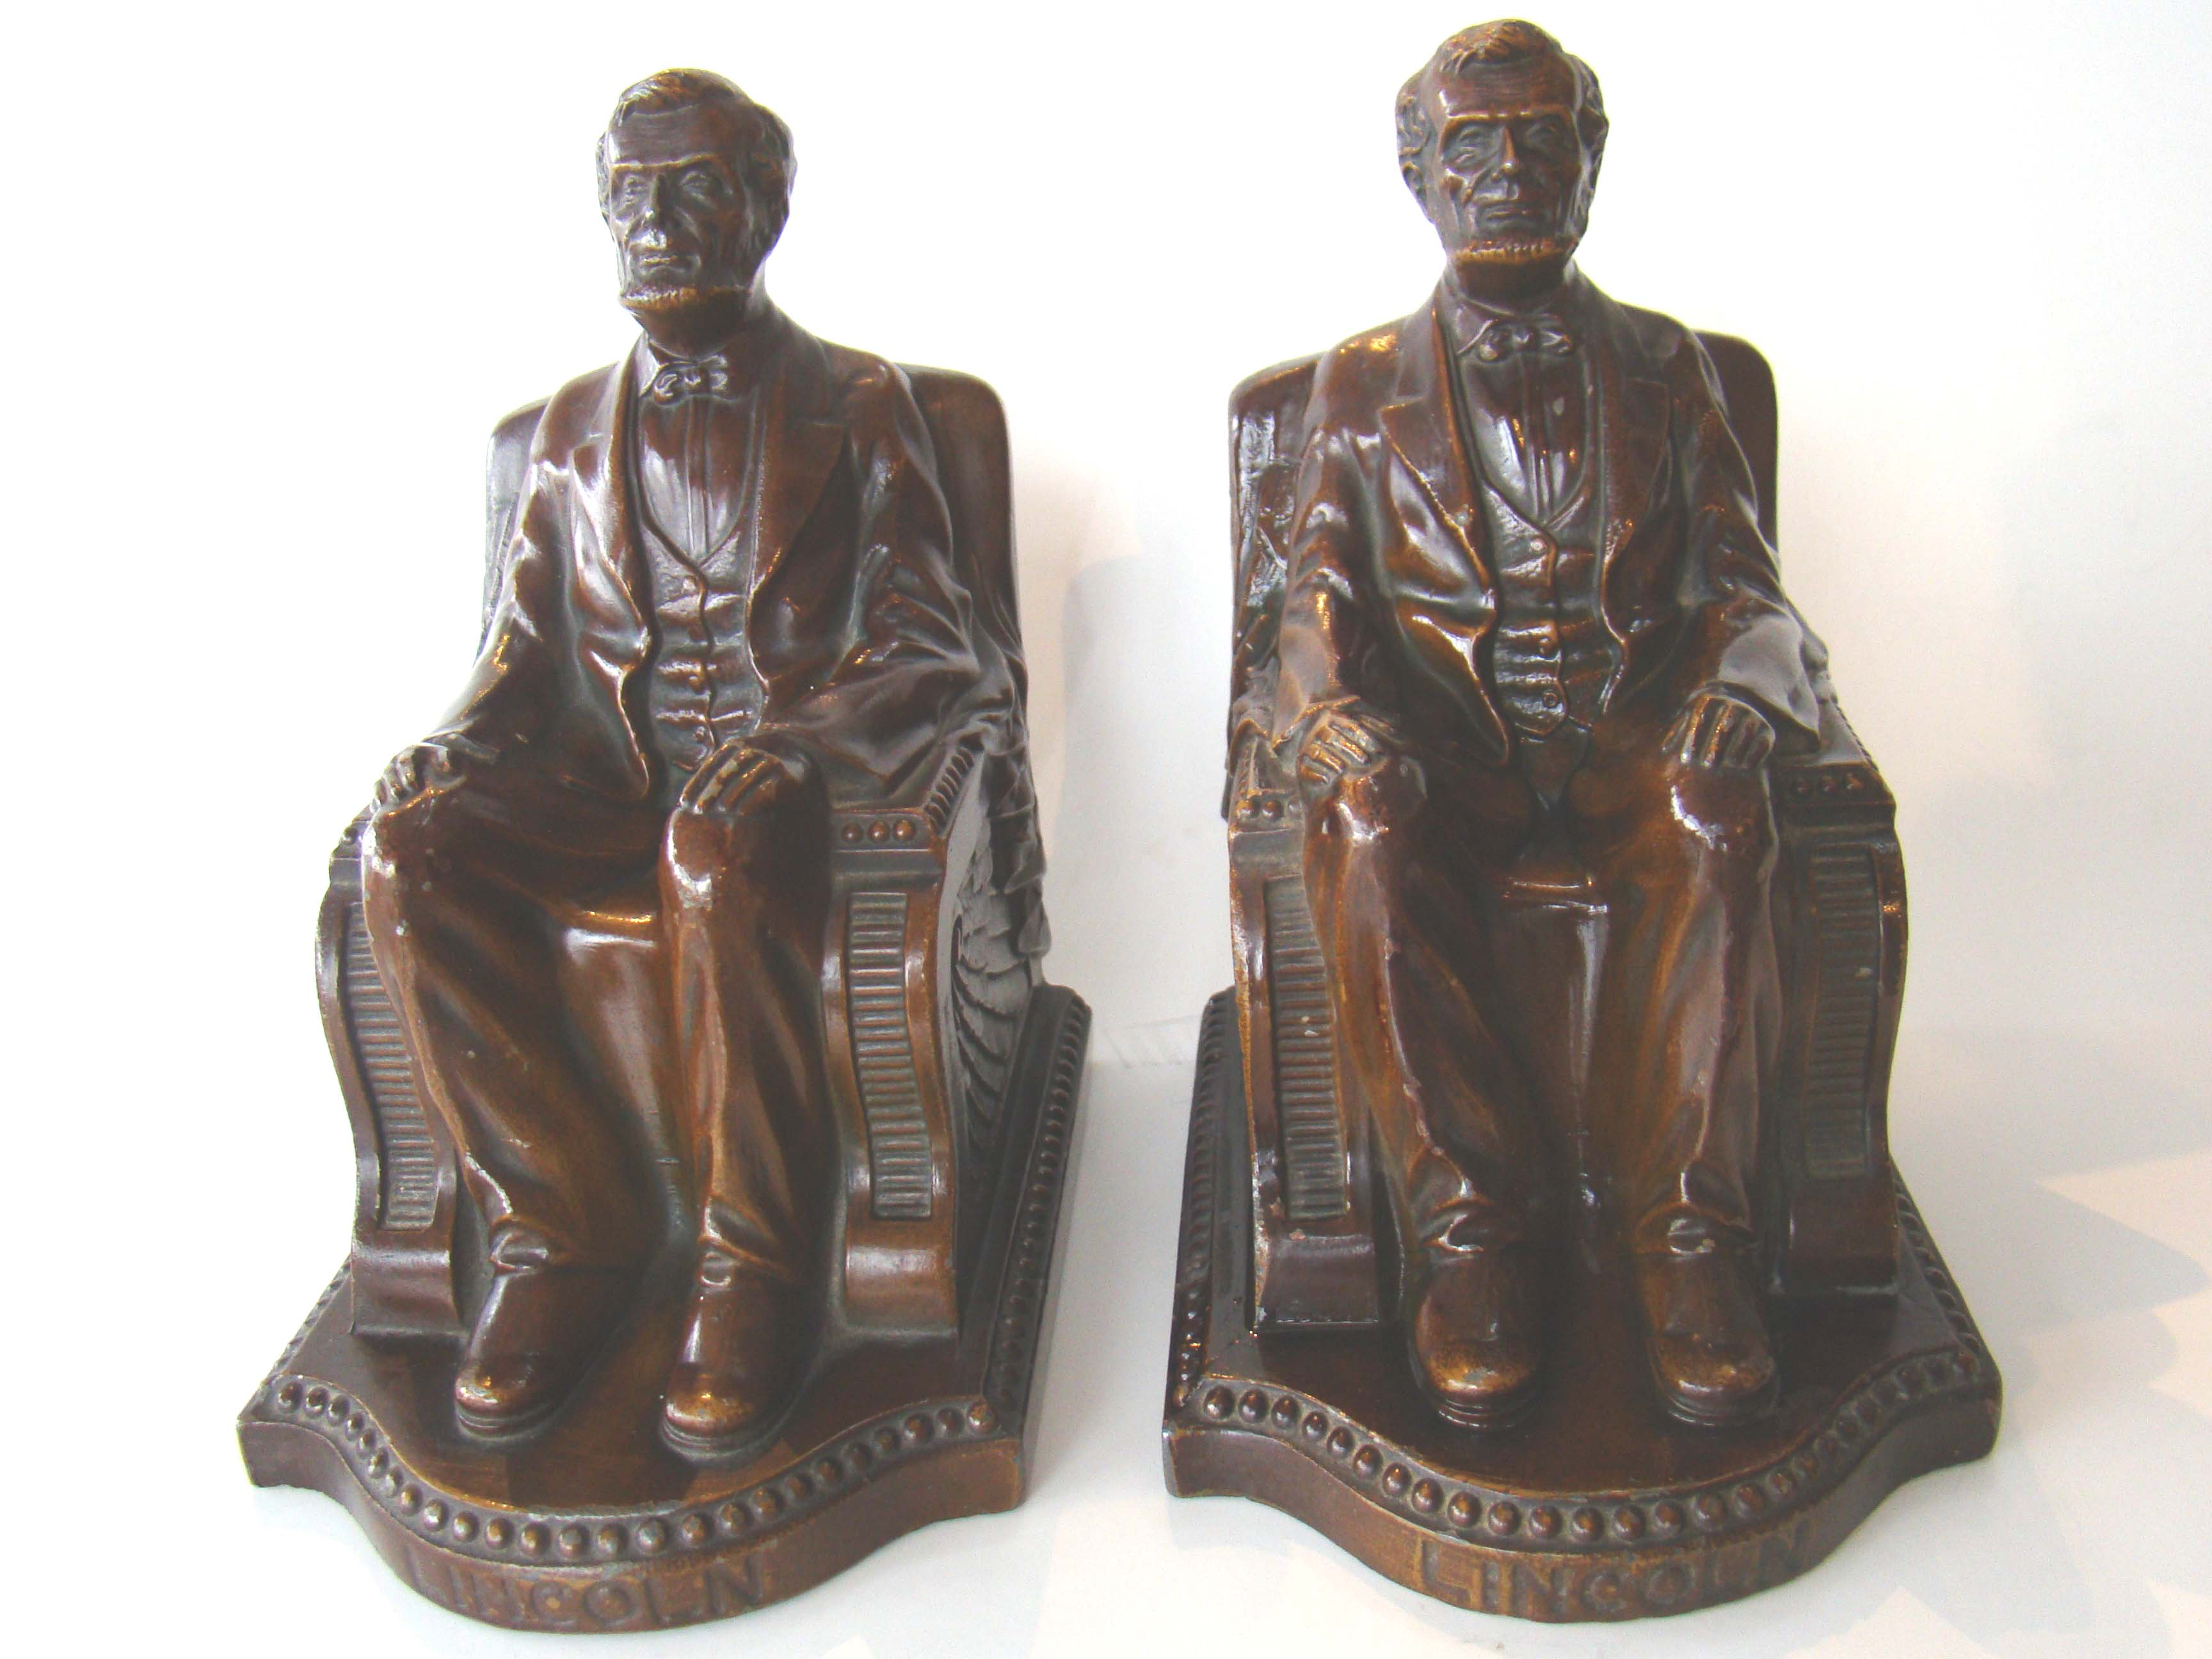 click to view detailed description of A pair of 'Lincoln in the chair' bookends made by Nuart in 1924